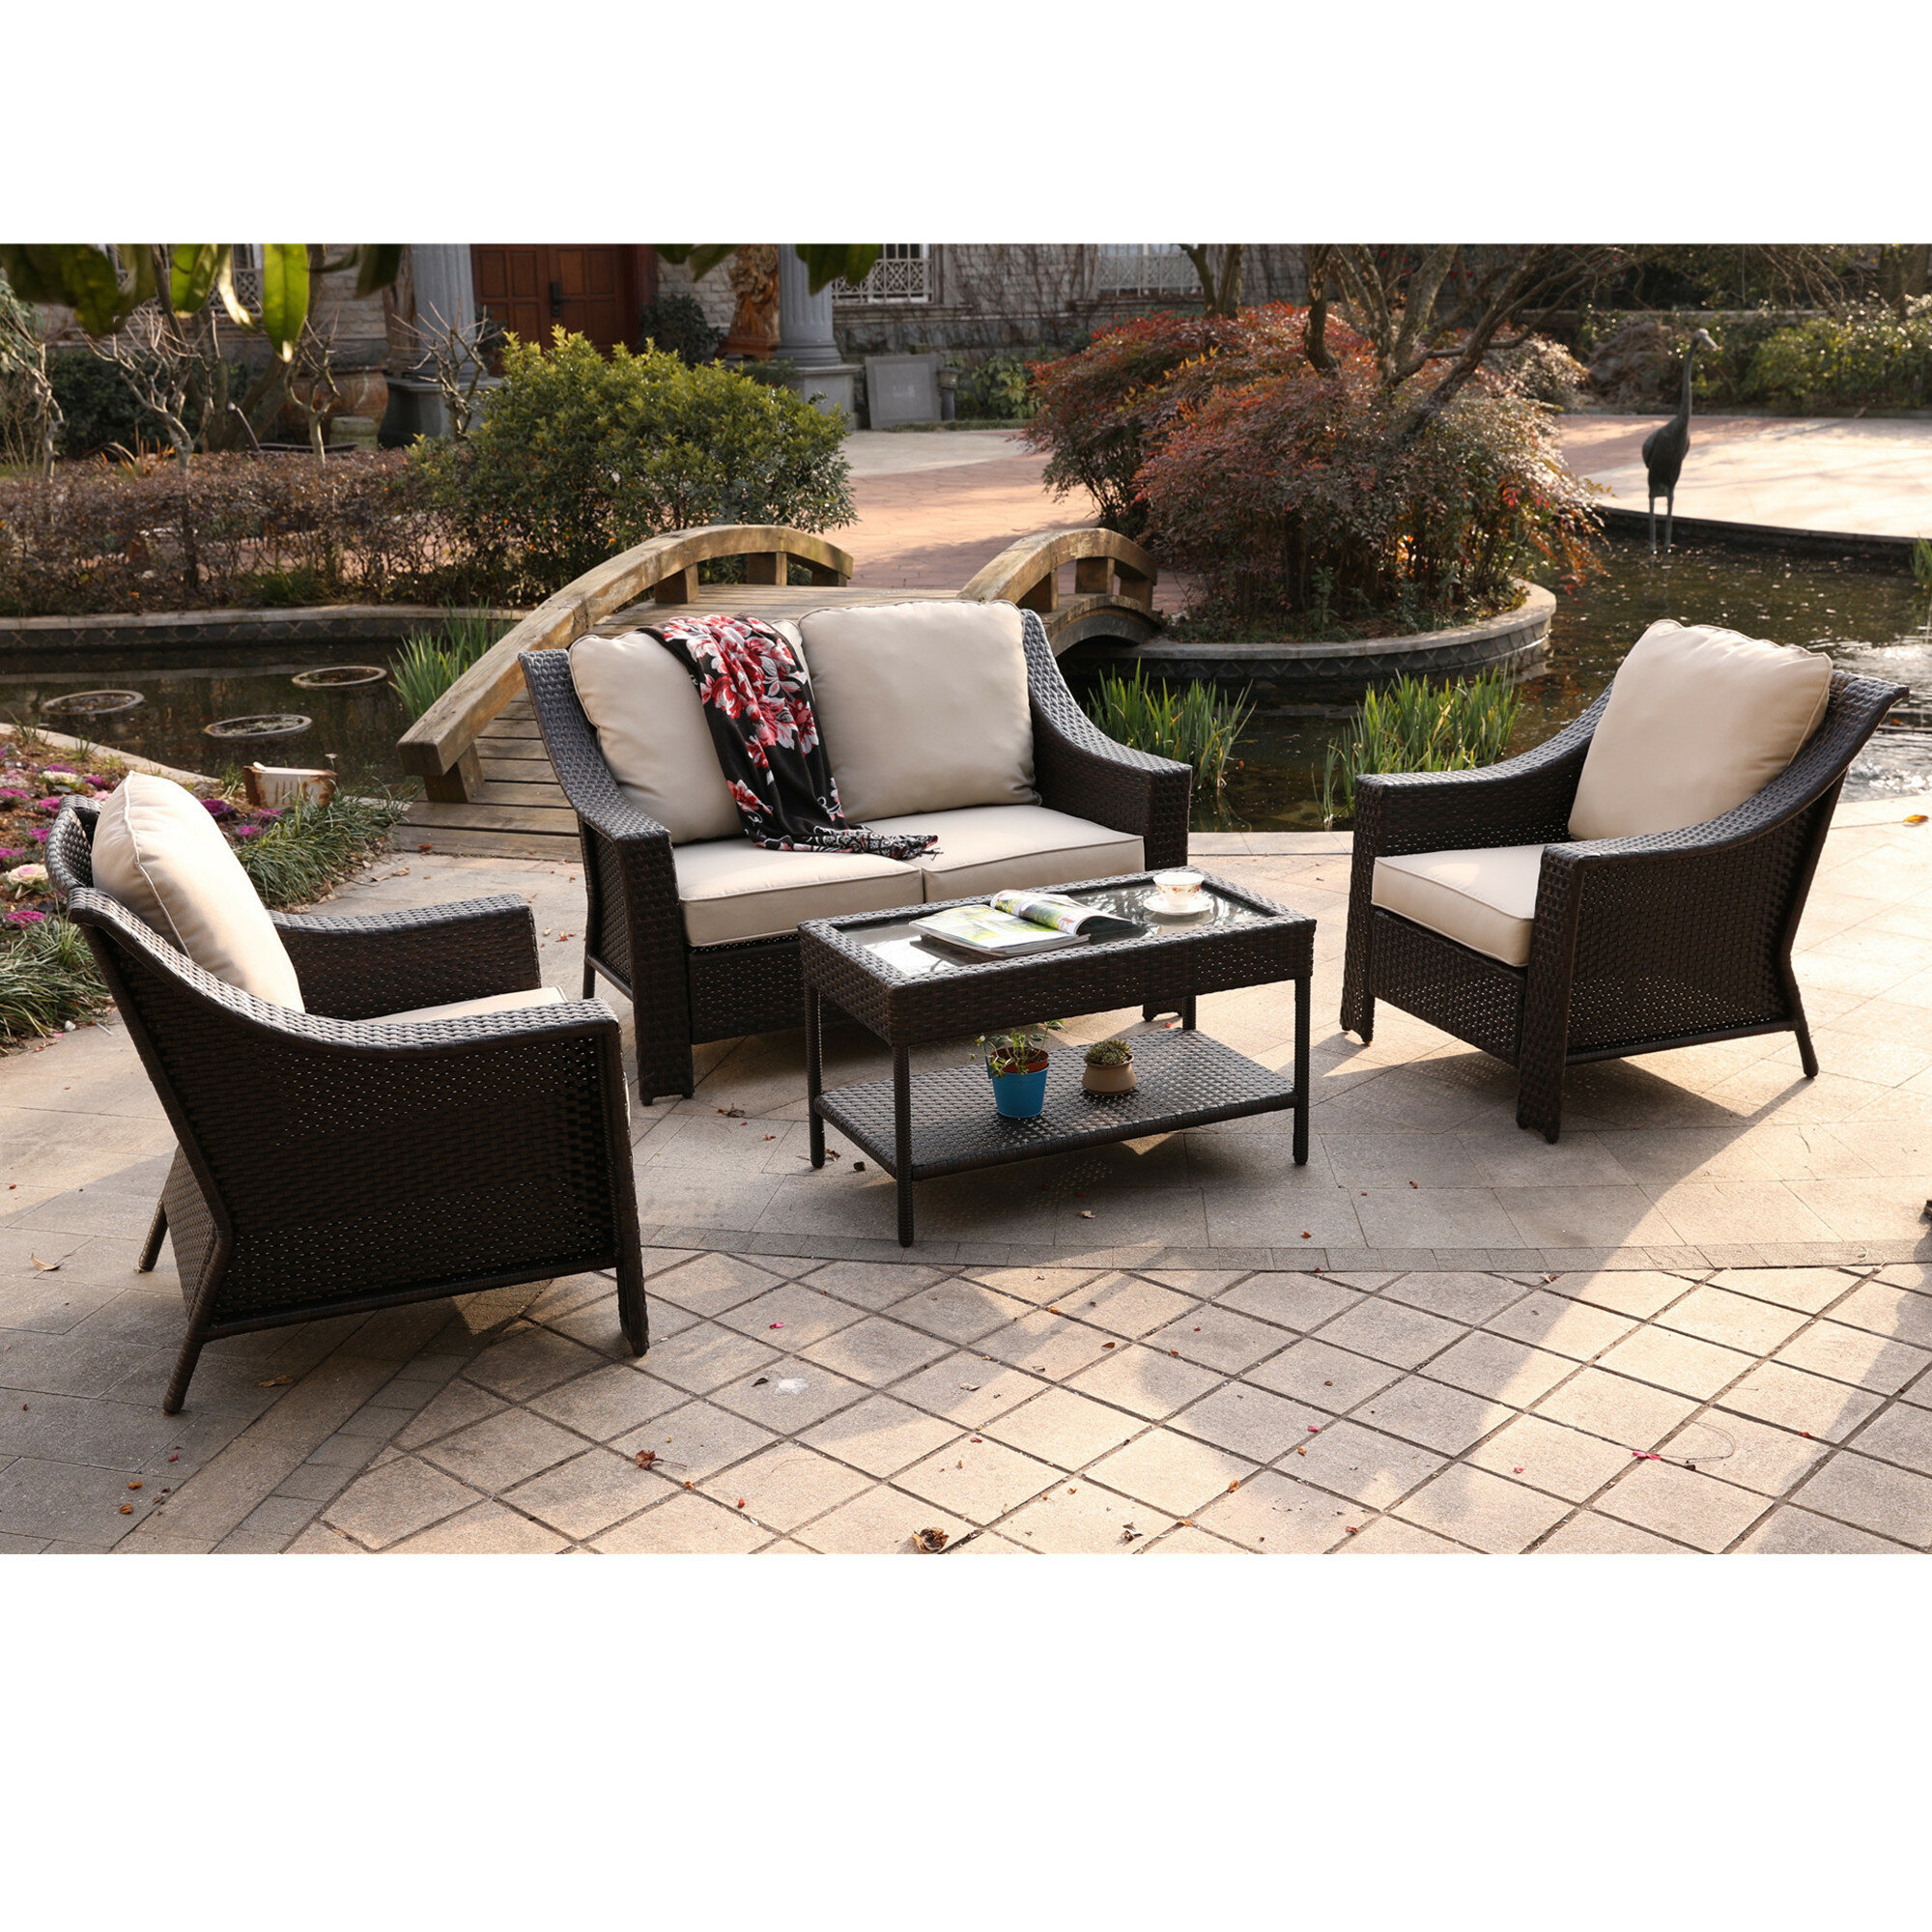 Birch lane heritage kinley 4 piece rattan sofa seating group with cushions birch lane